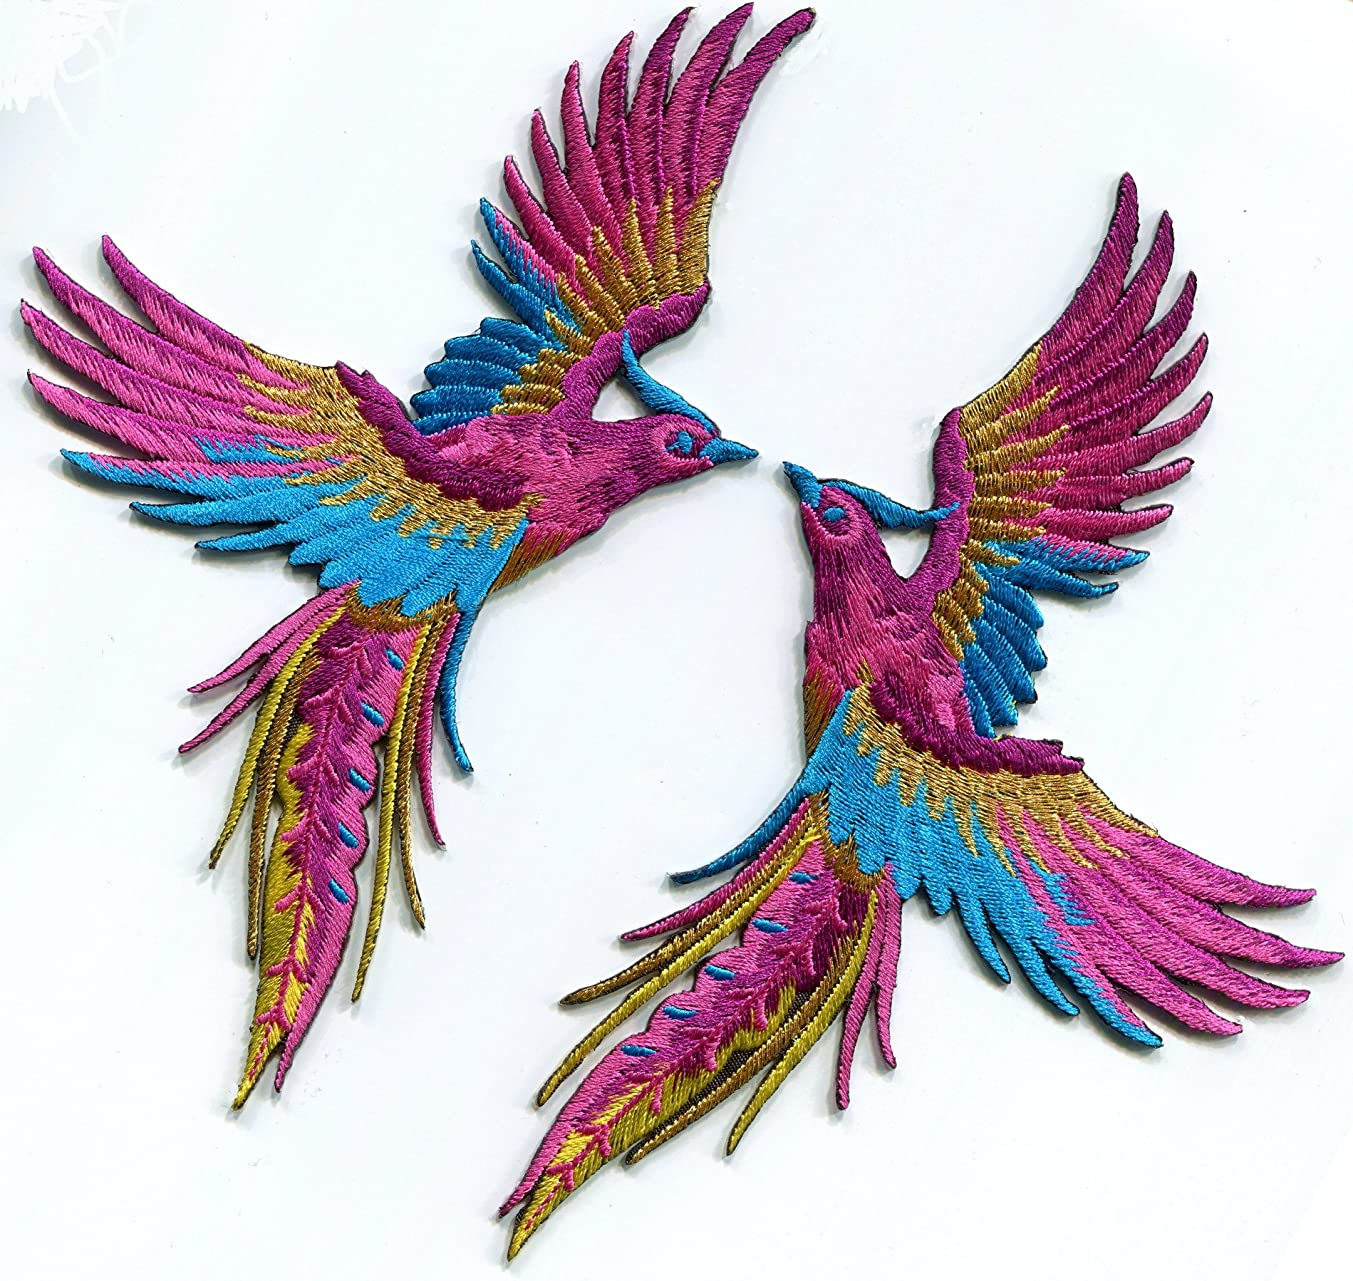 Phoenix phenix birds magenta blue gold embroidered appliques iron-on patches pair S-1330